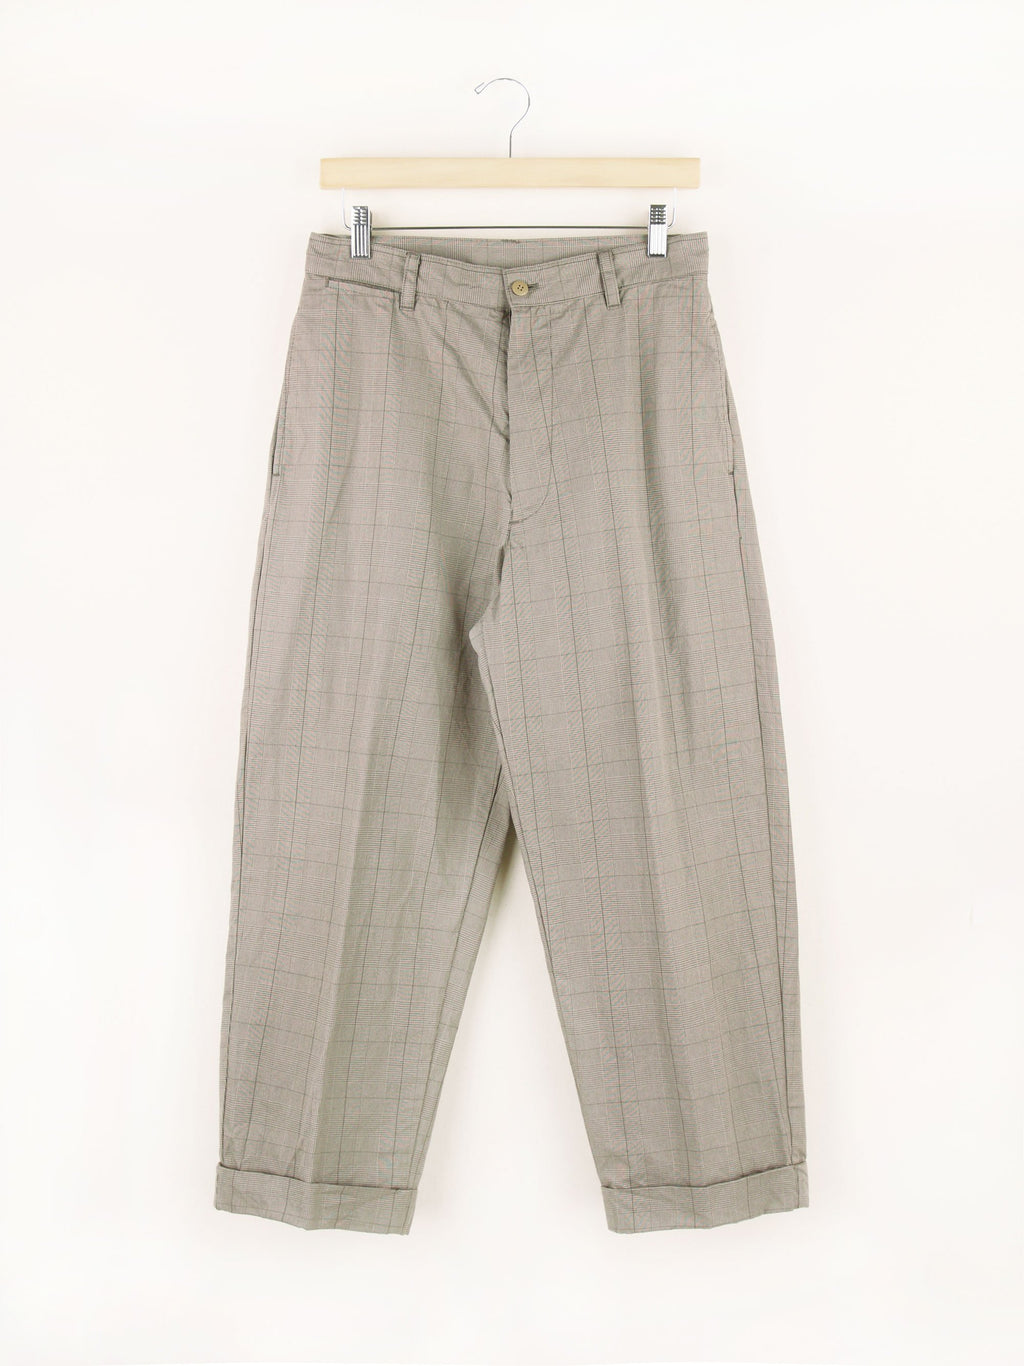 Namu Shop - Niche Glencheck Hilts Pants